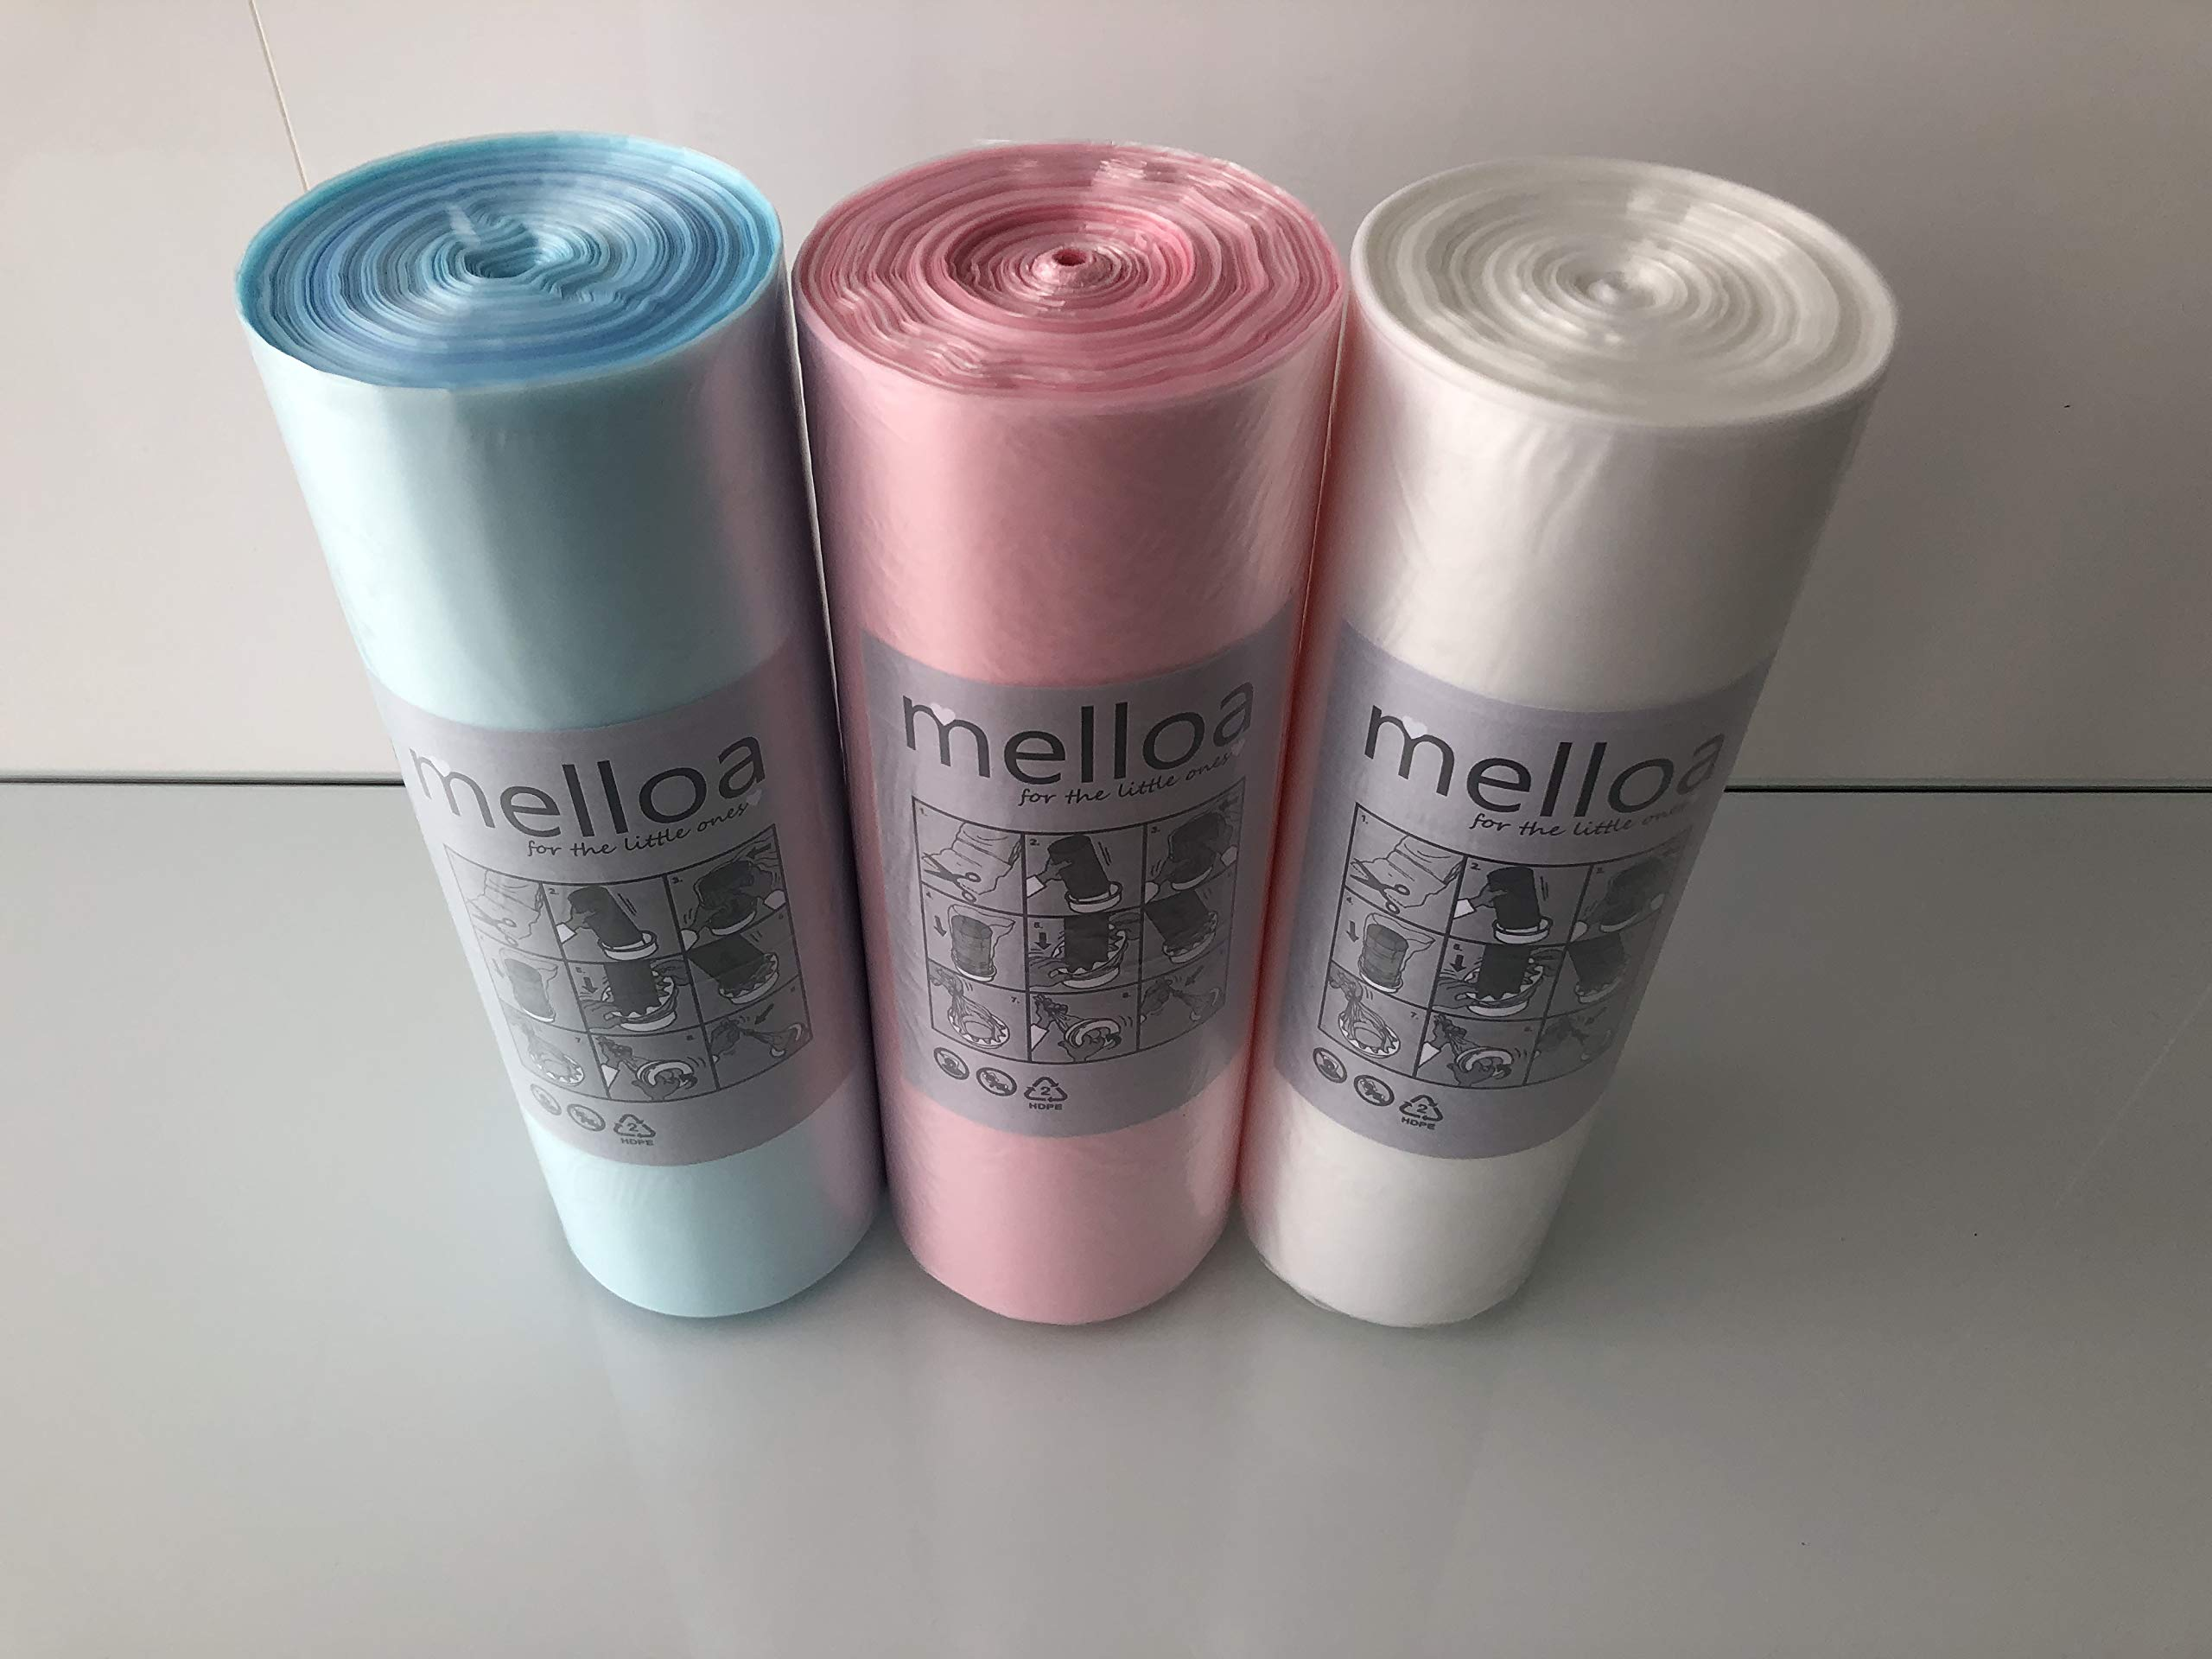 200 Meters+Refill Tube 200m Liner Equivalent to 28 Angelcare Original Refills Refill foil 200m Soncare Nappy Sacks Compatible with Sangenic Angelcare Tommee Tippee /& Litter Locker II Cassettes